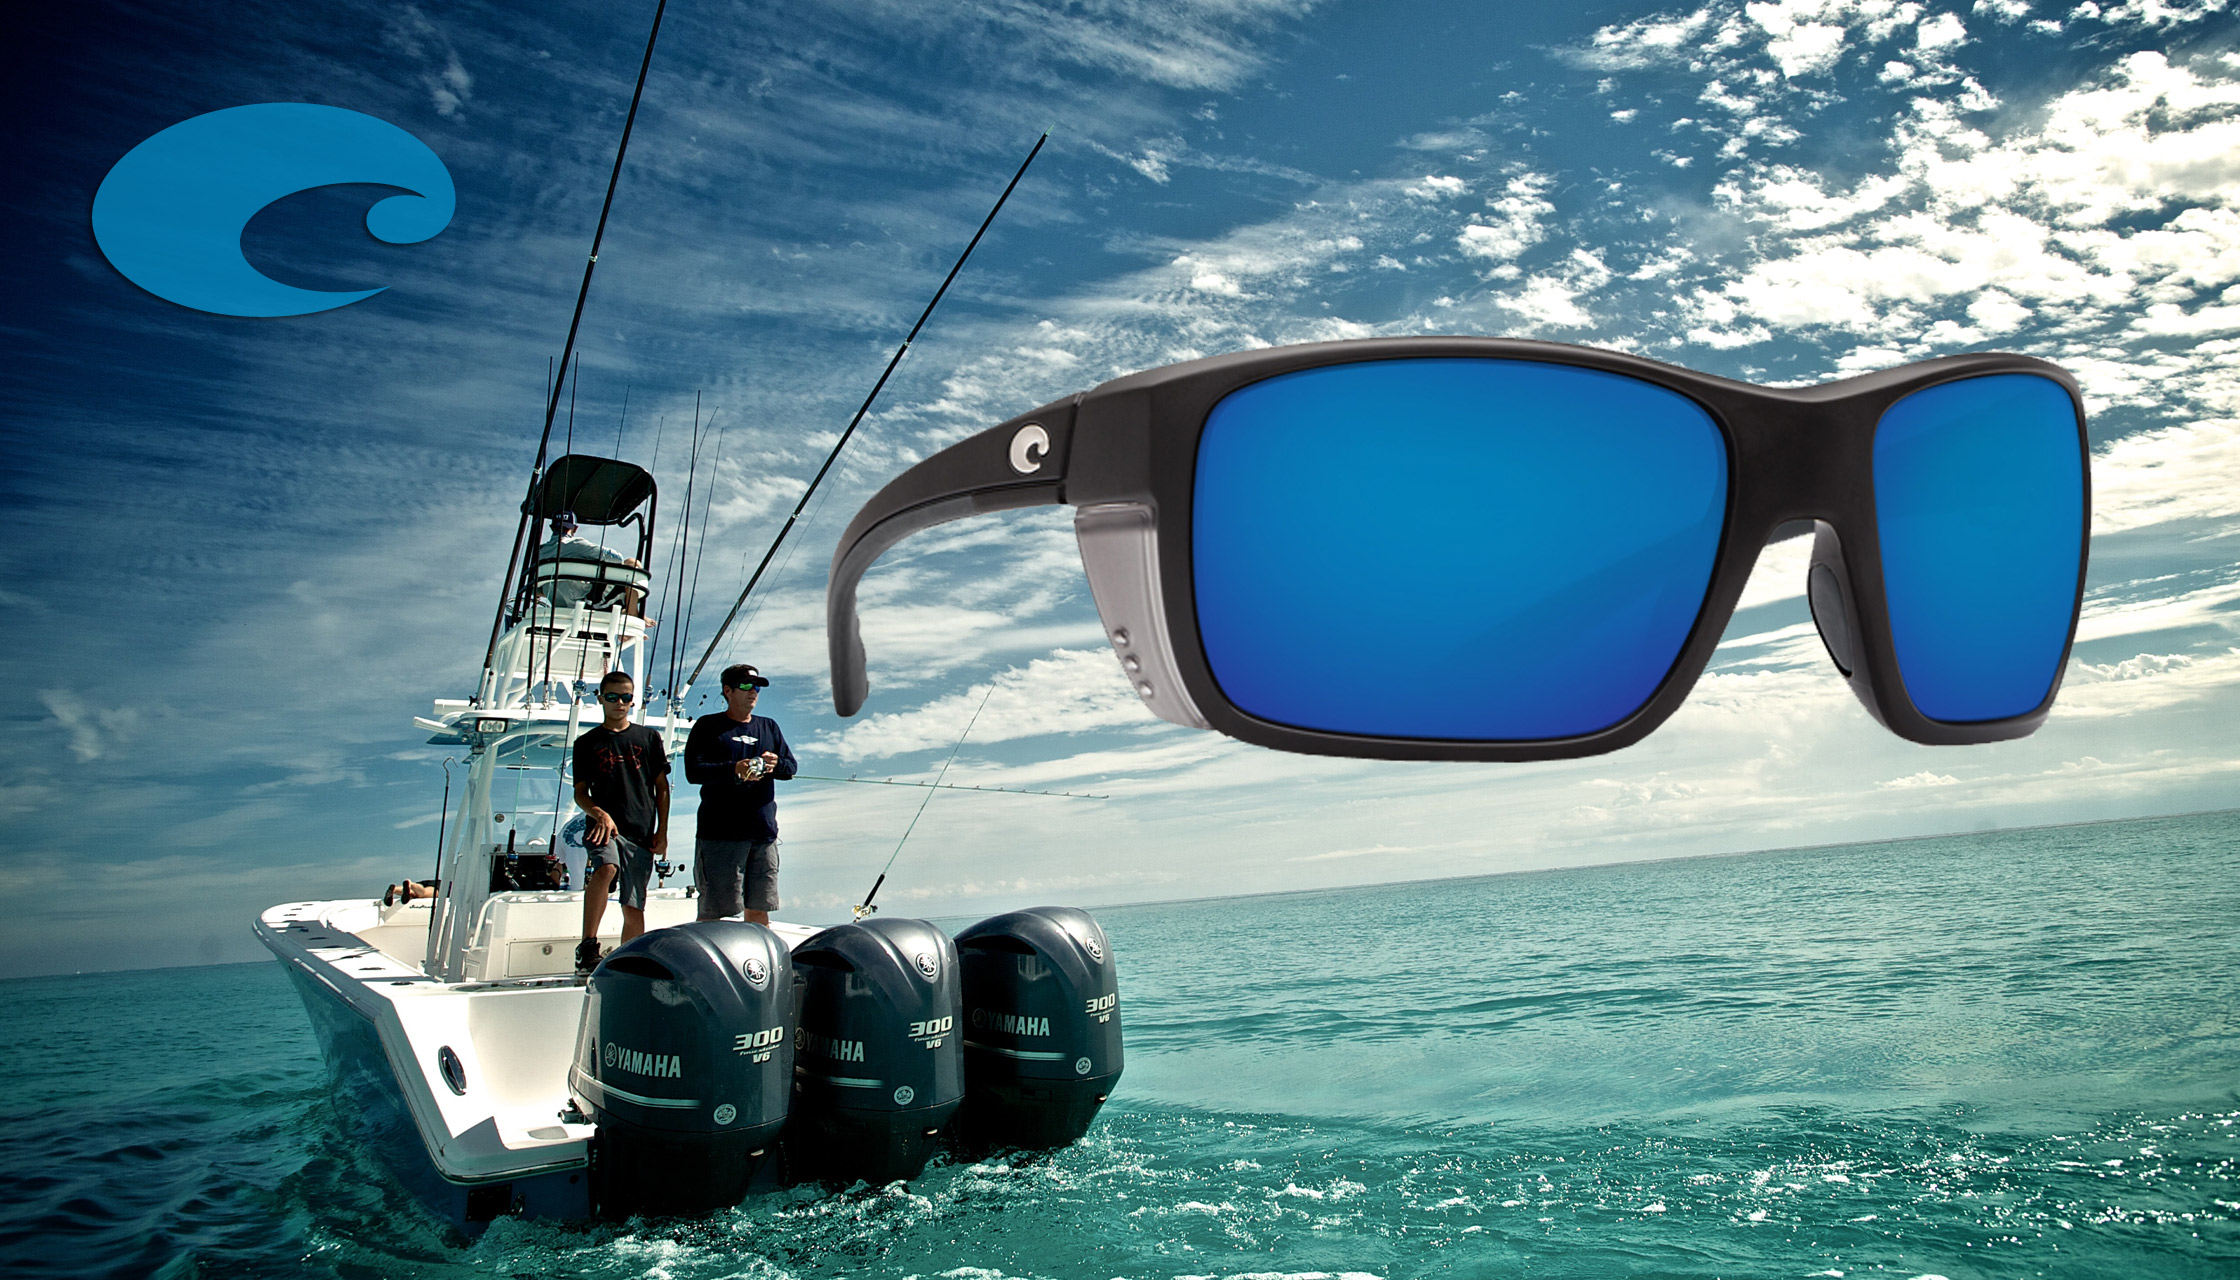 Costa Sunglasses Contest